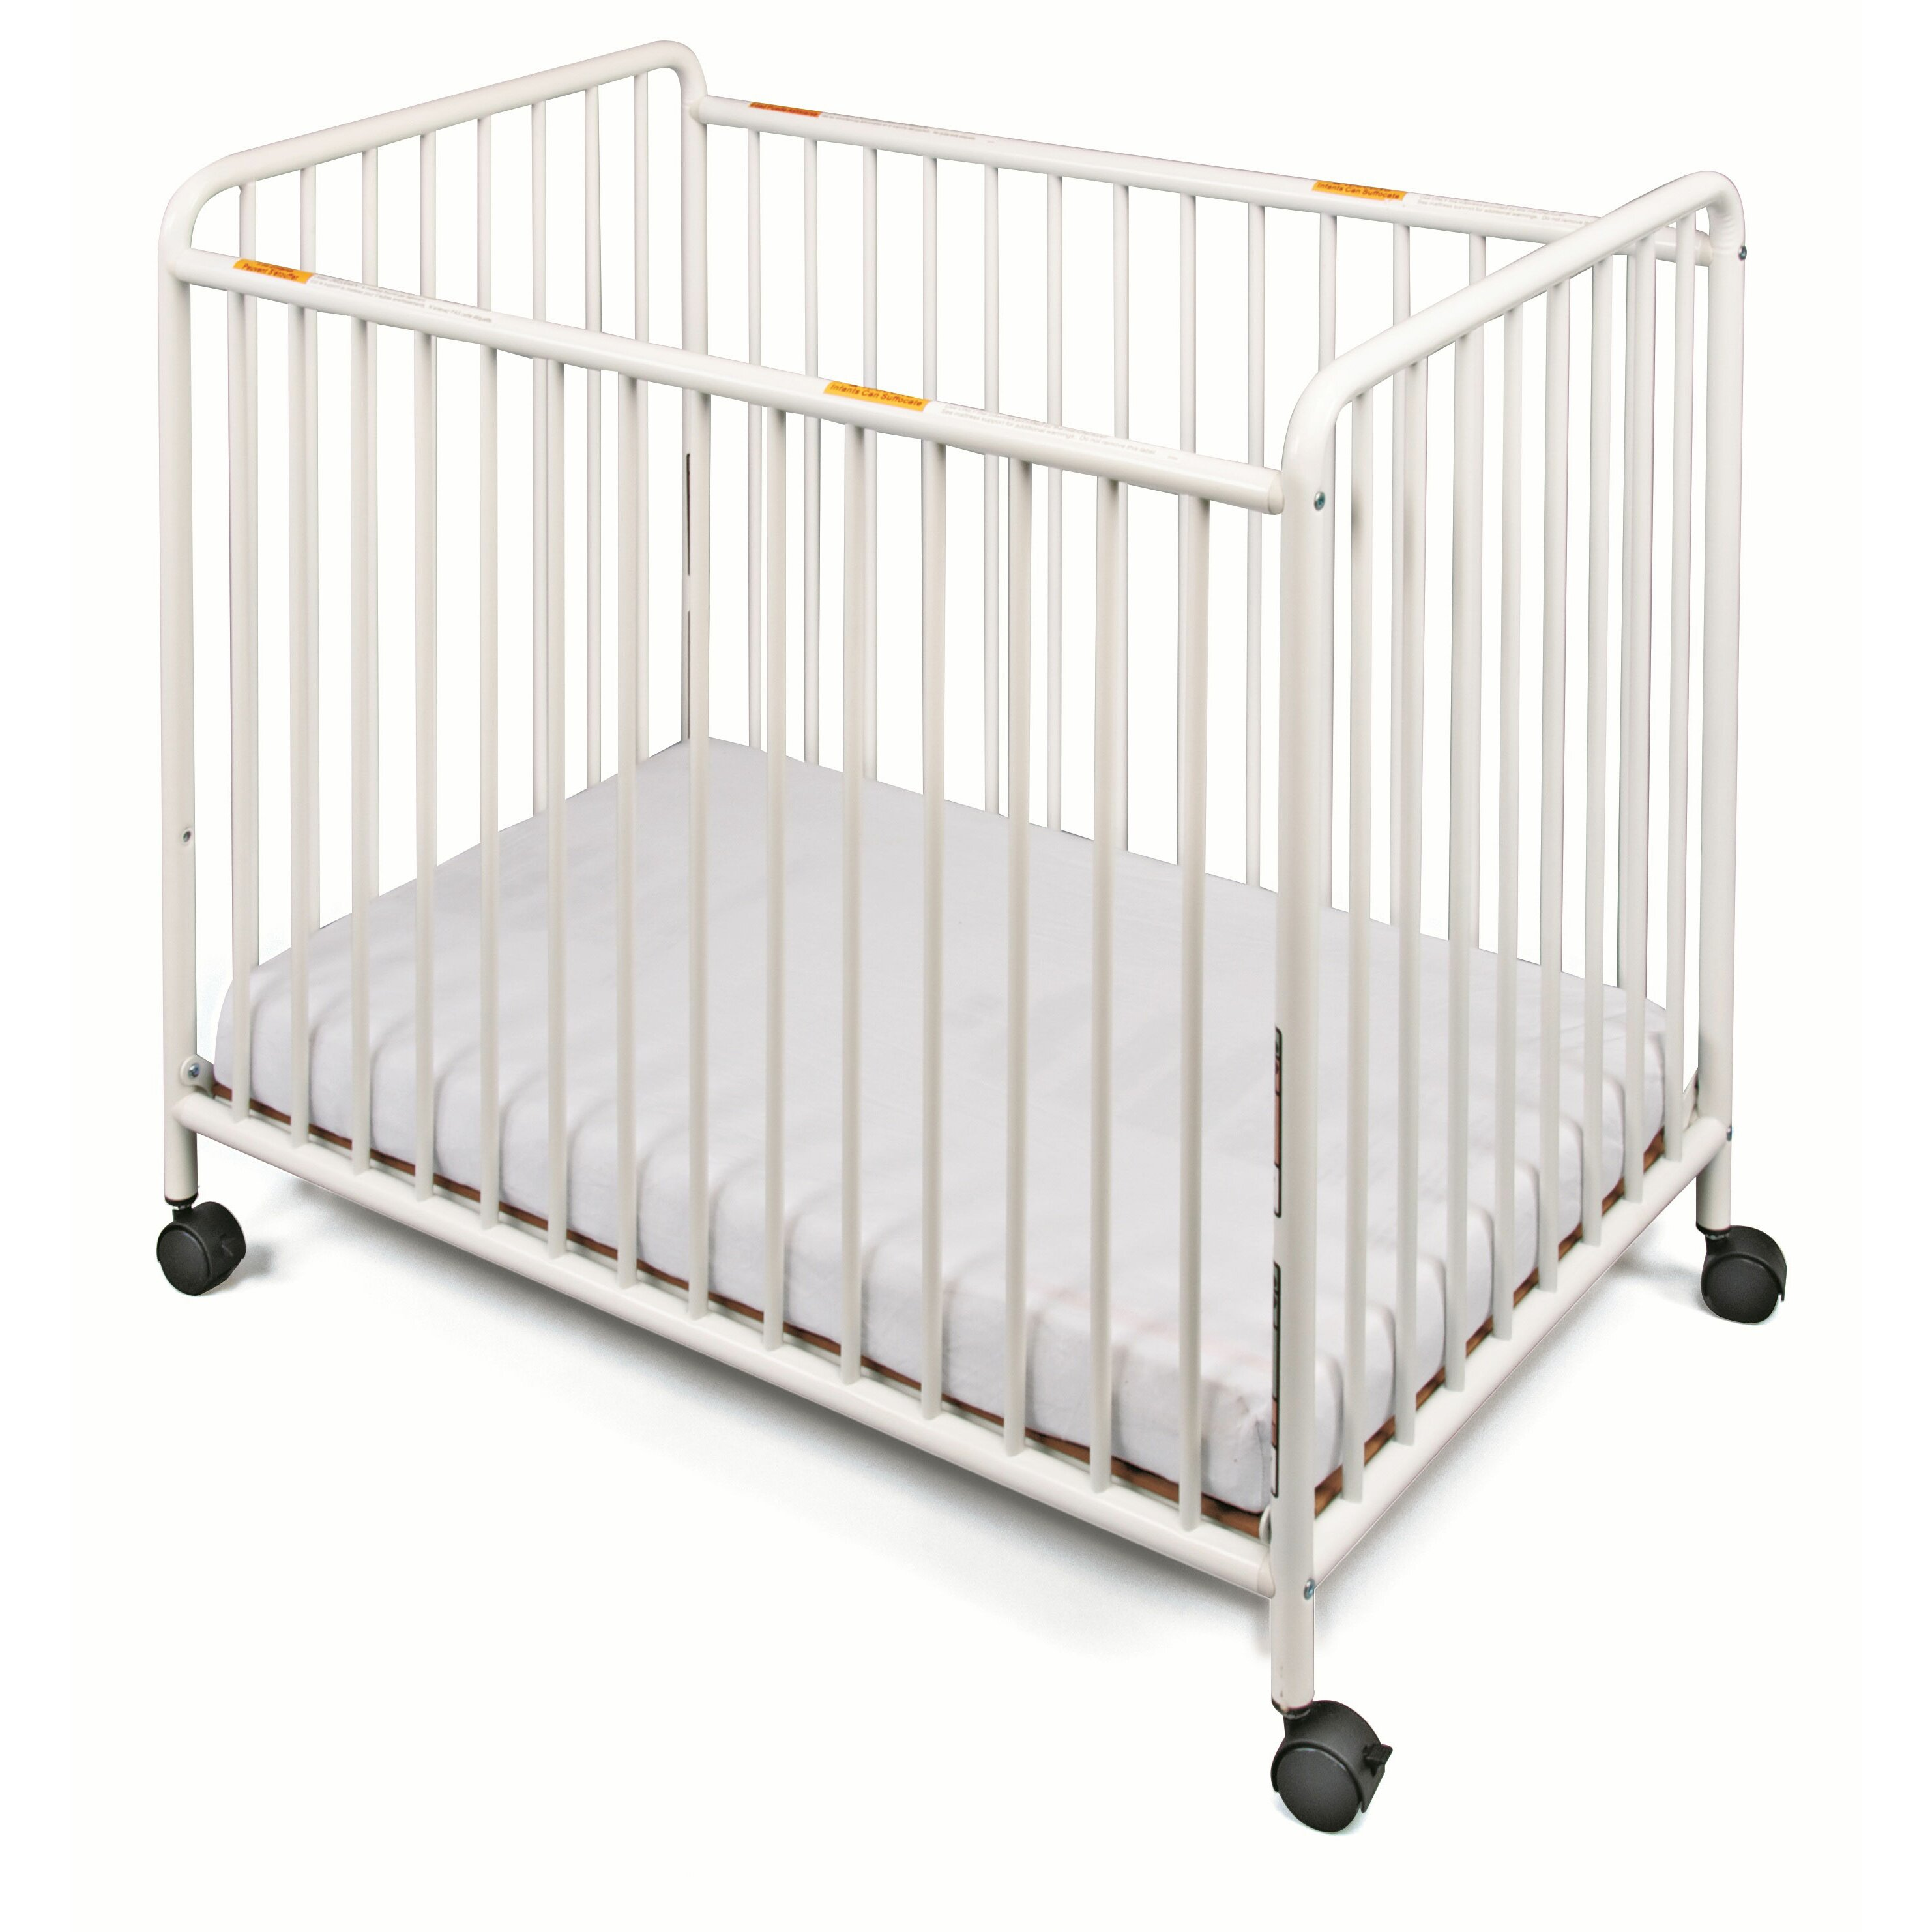 Graco crib for sale manila - Chelsea Slatted Compact Steel Non Folding Convertible Crib With Mattress